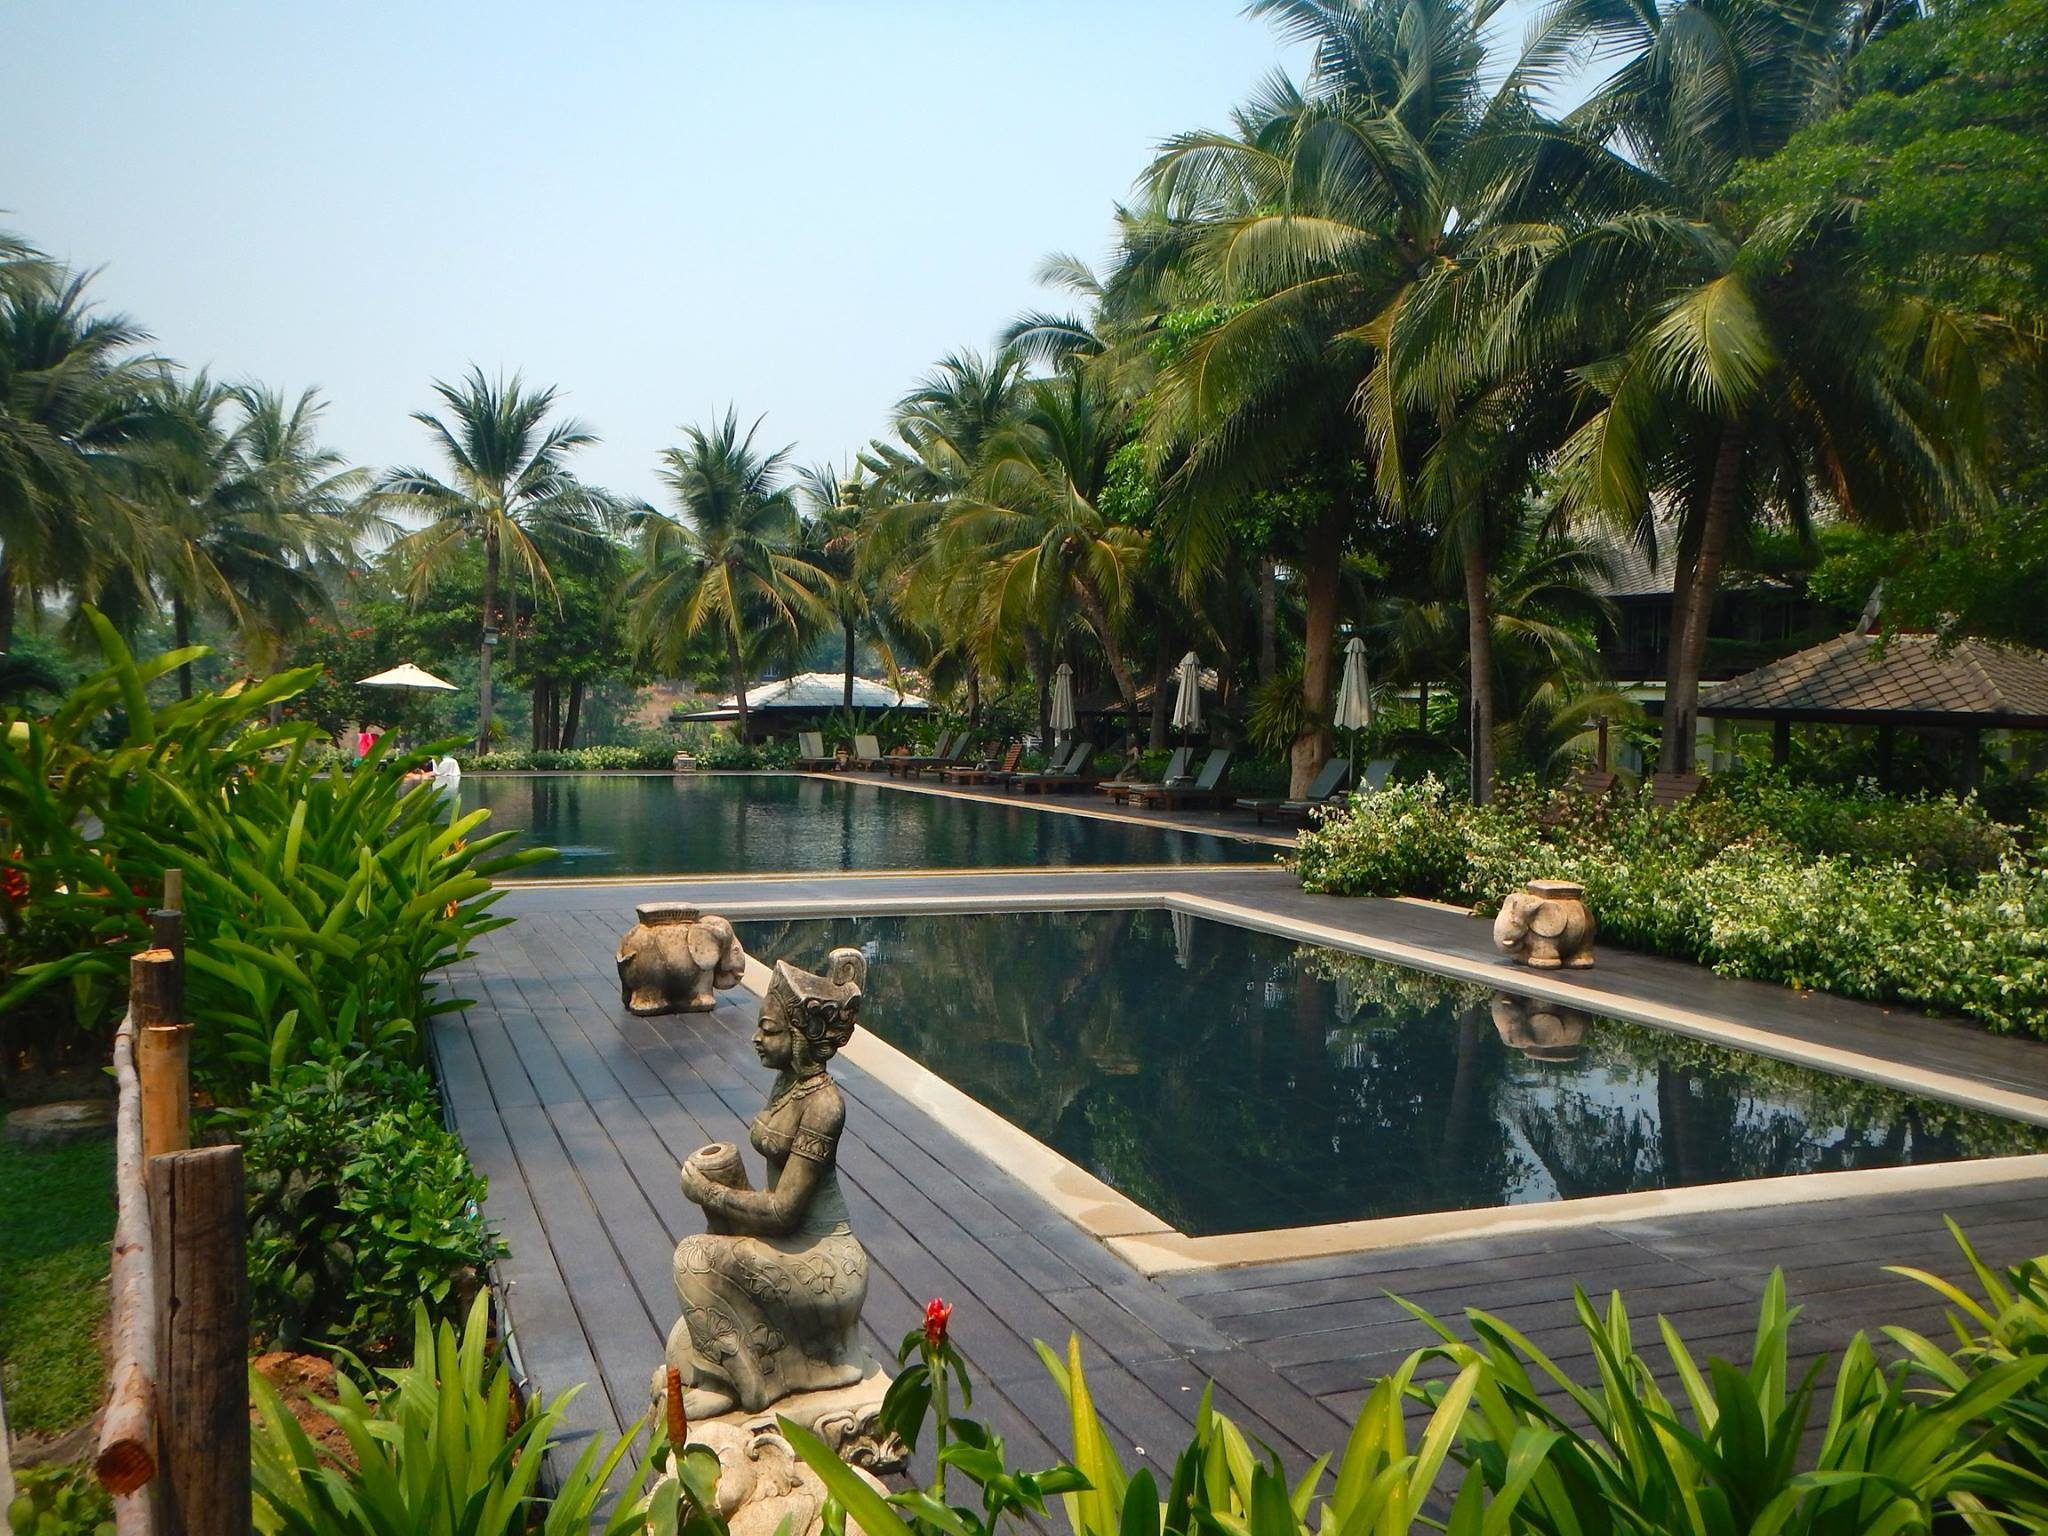 River Kwai Beach Resort Swimming Pool Thailand BiniBlog LocalBini Travel Journal Daphne Lambi Blogger